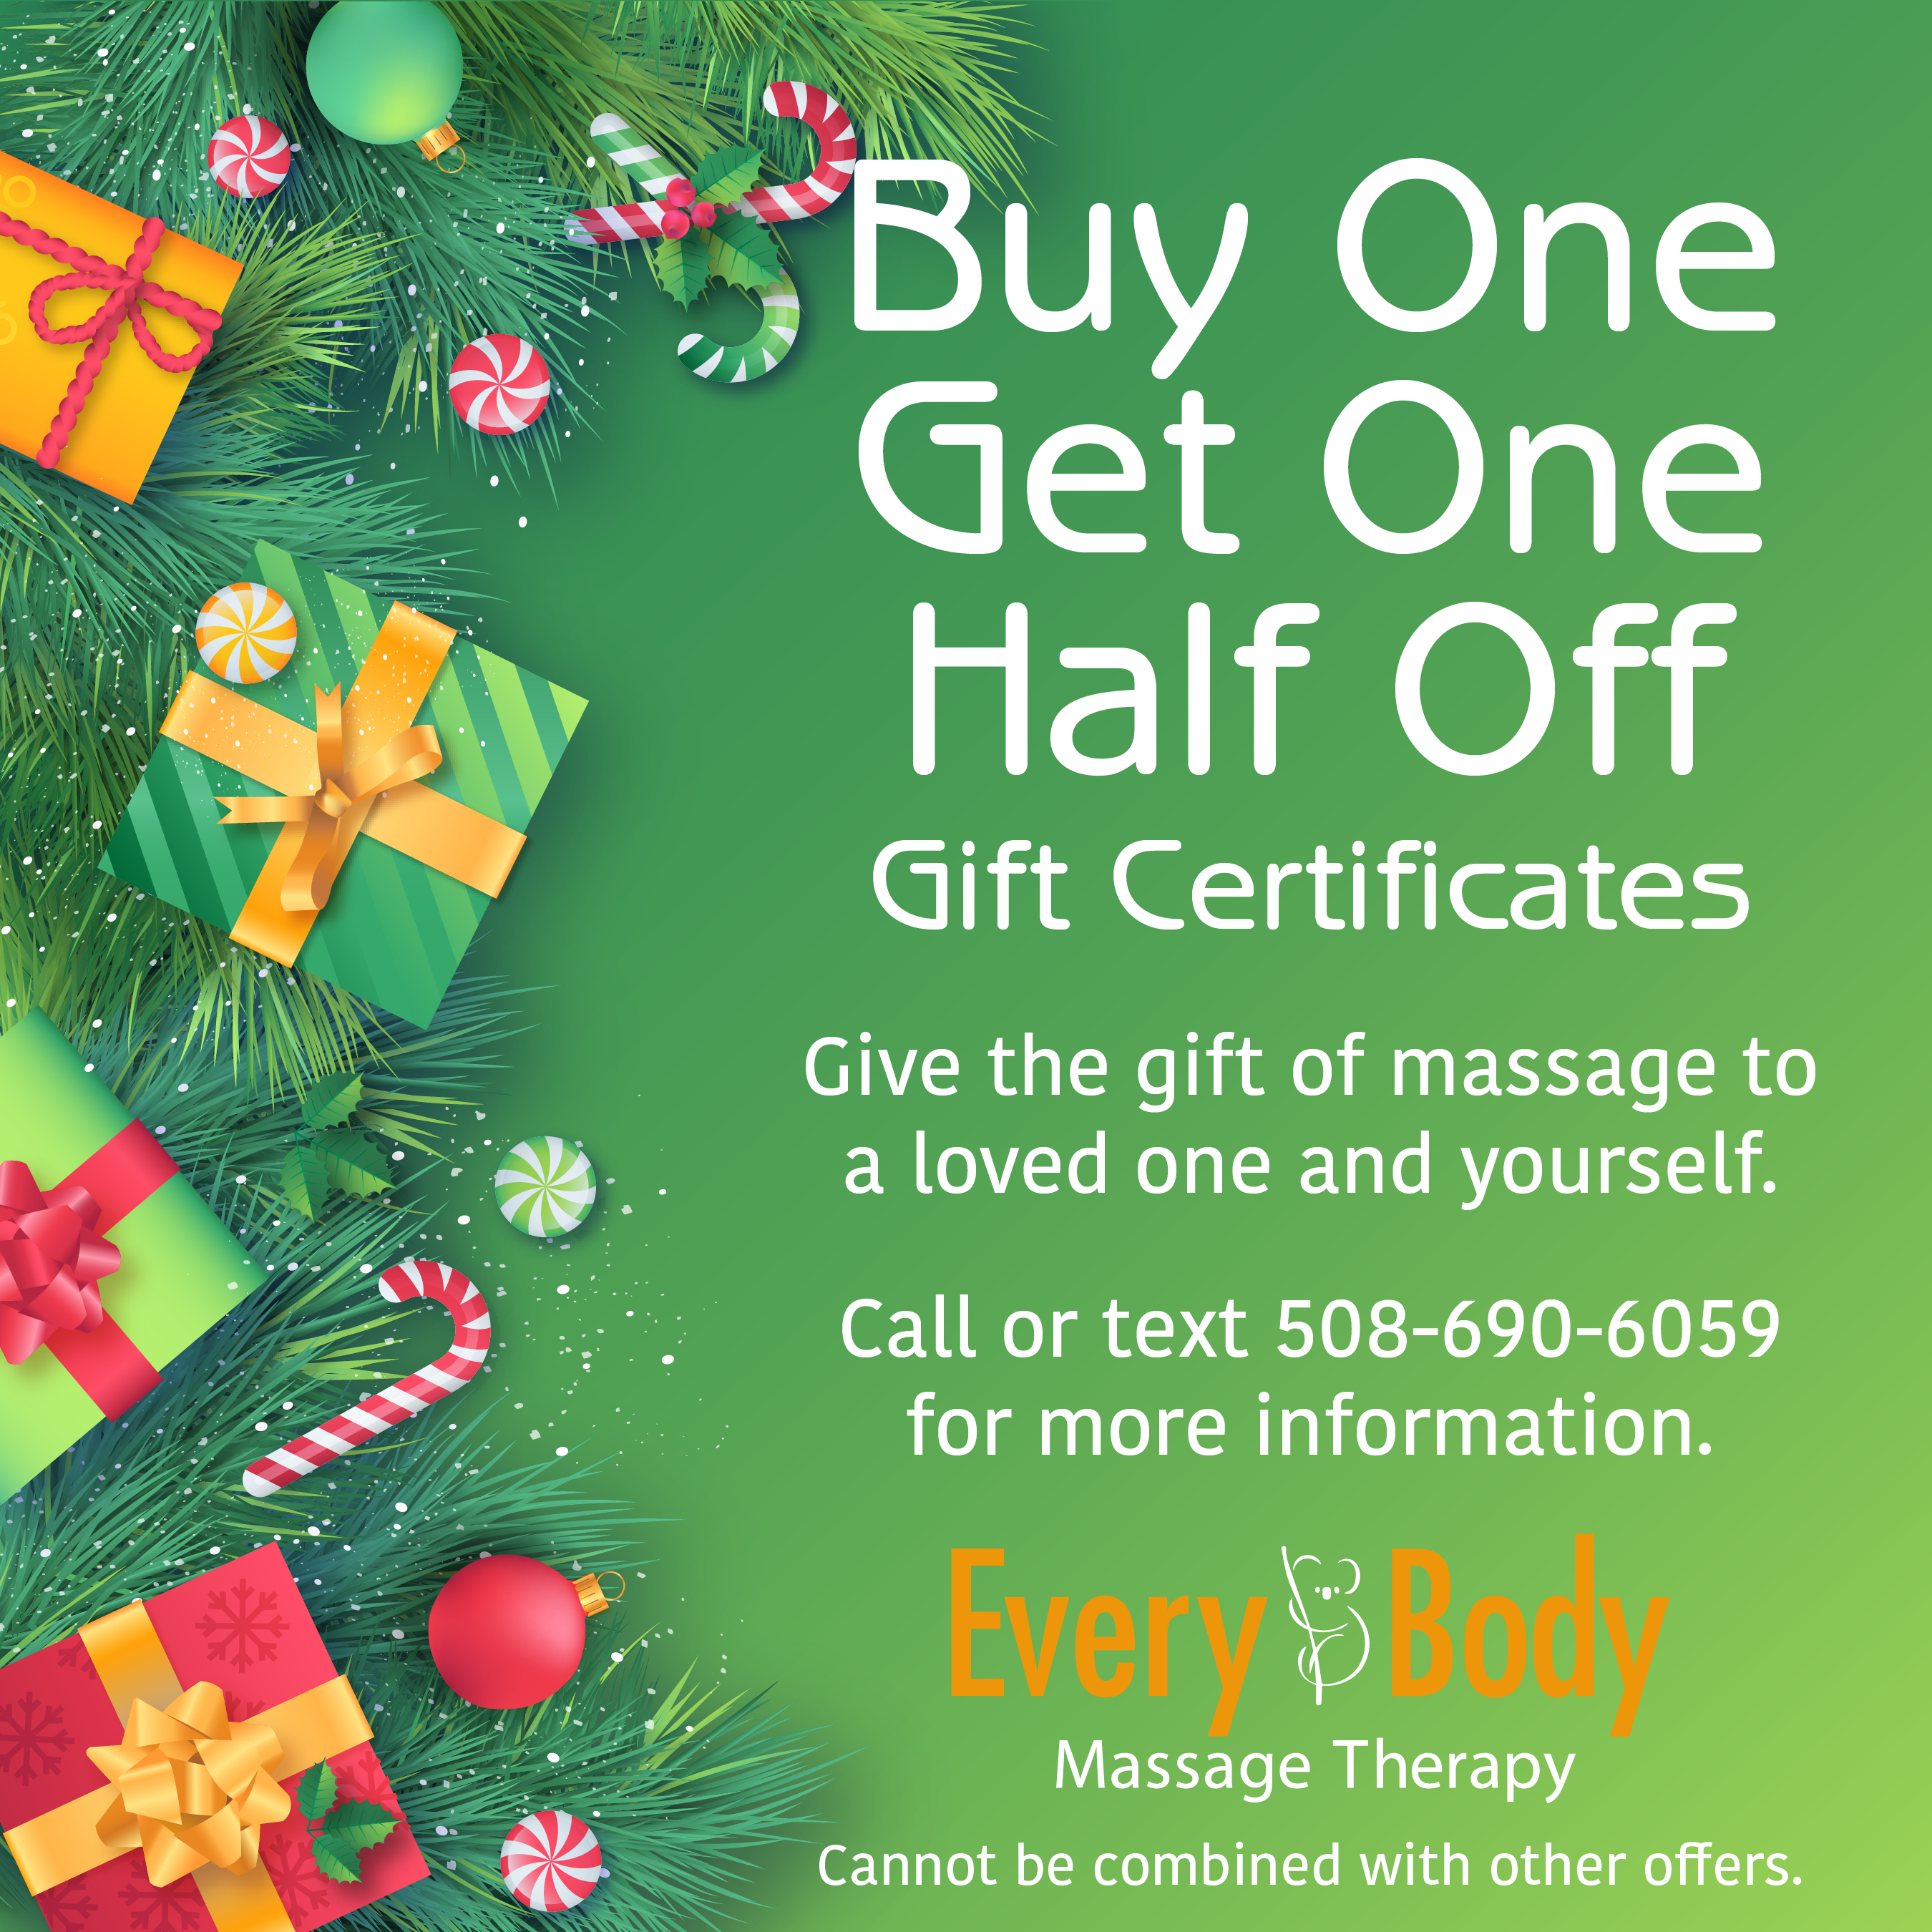 Buy One Get One Half Off Gift Certificates